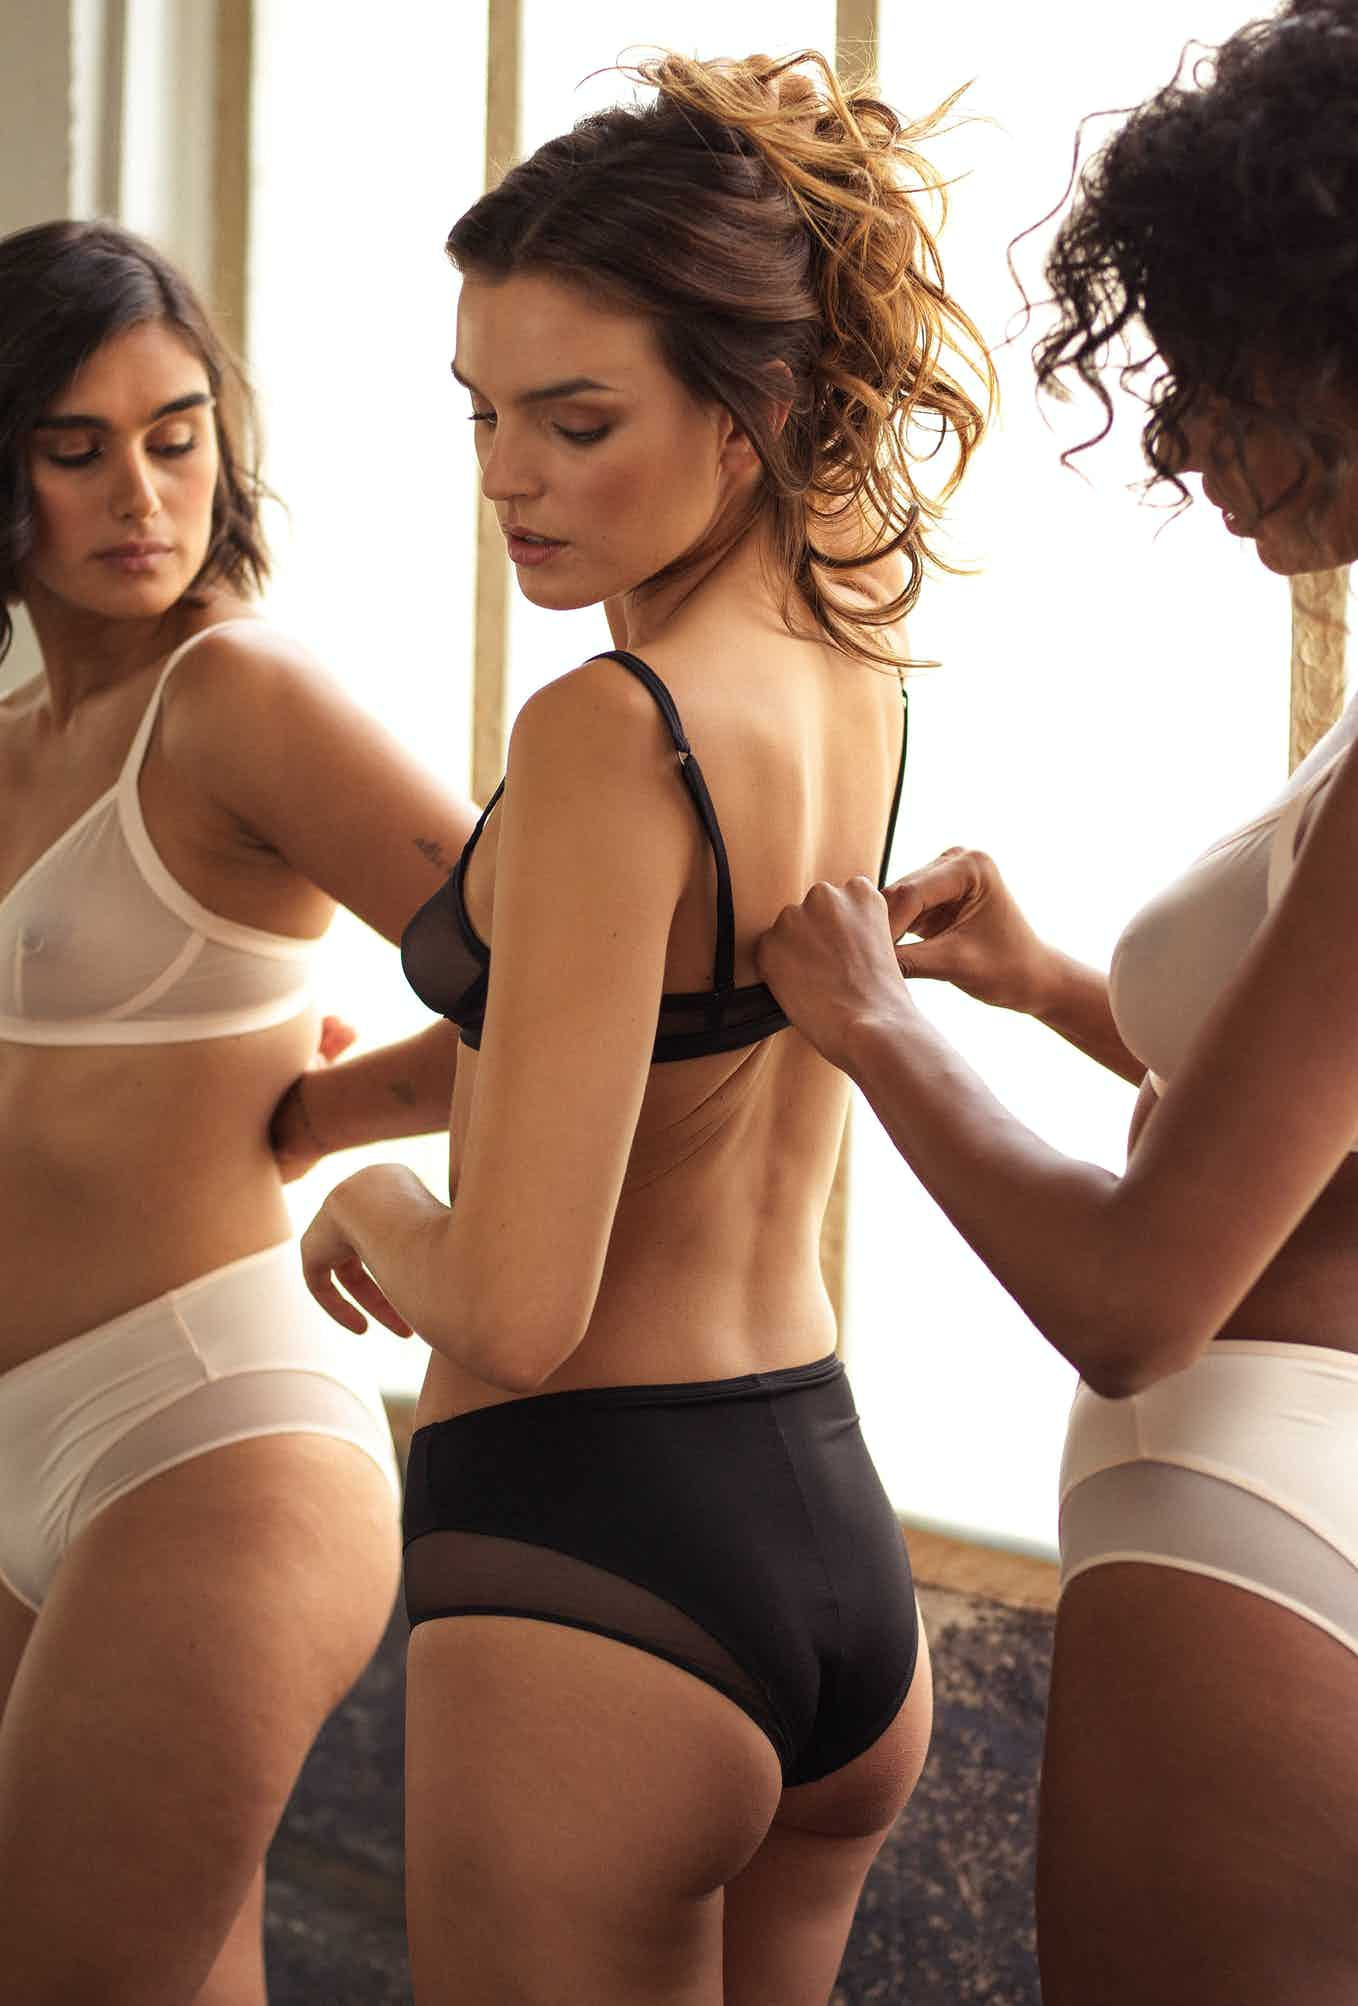 Lingerie sets Histoire de femmes in black, powdery pink and ivory